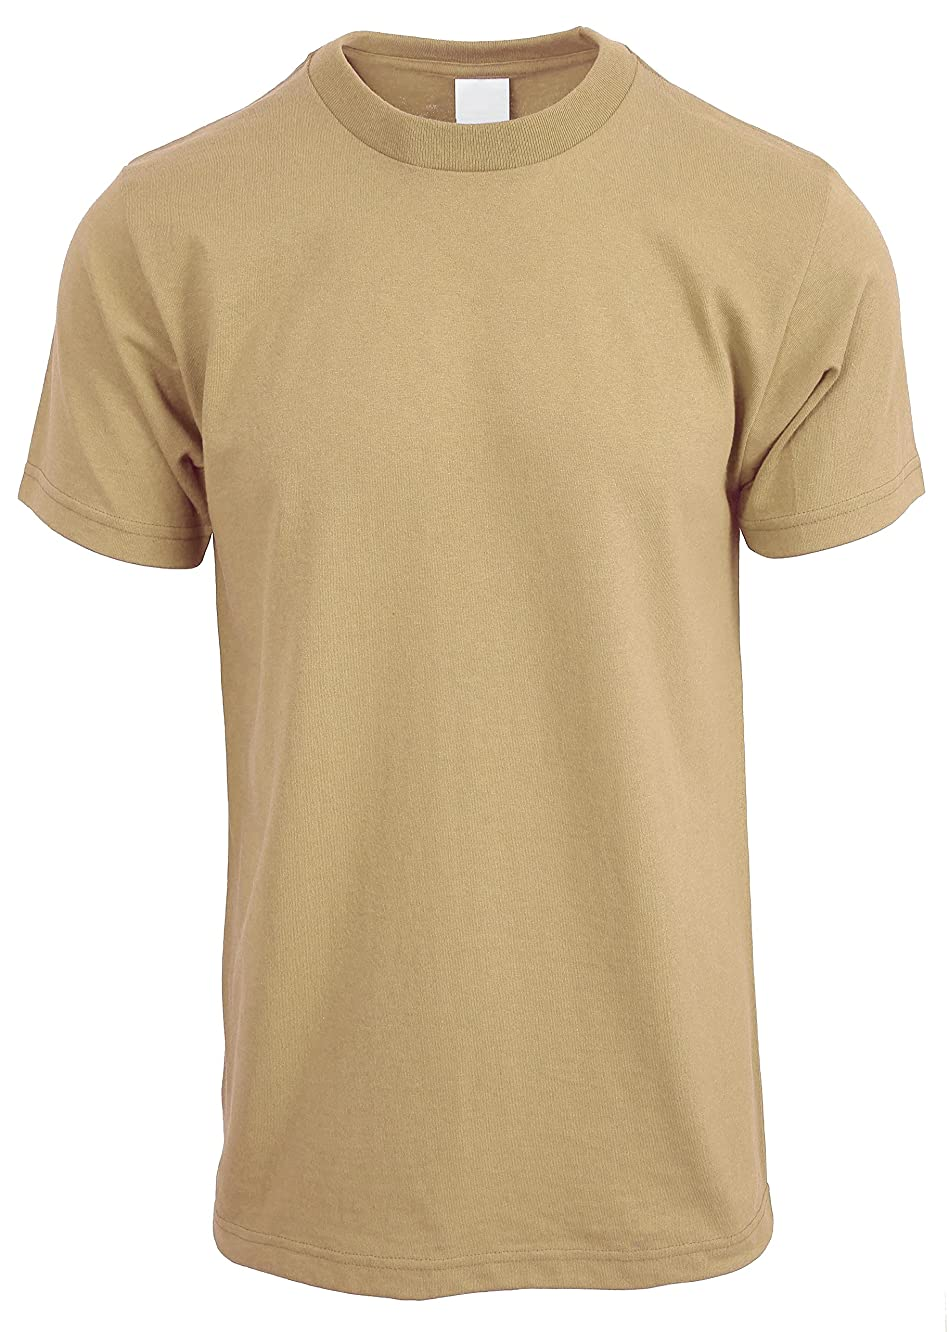 Hat and Beyond Mens Crew Neck T Shirts Solid Short Sleeve Active Tee S-5XL